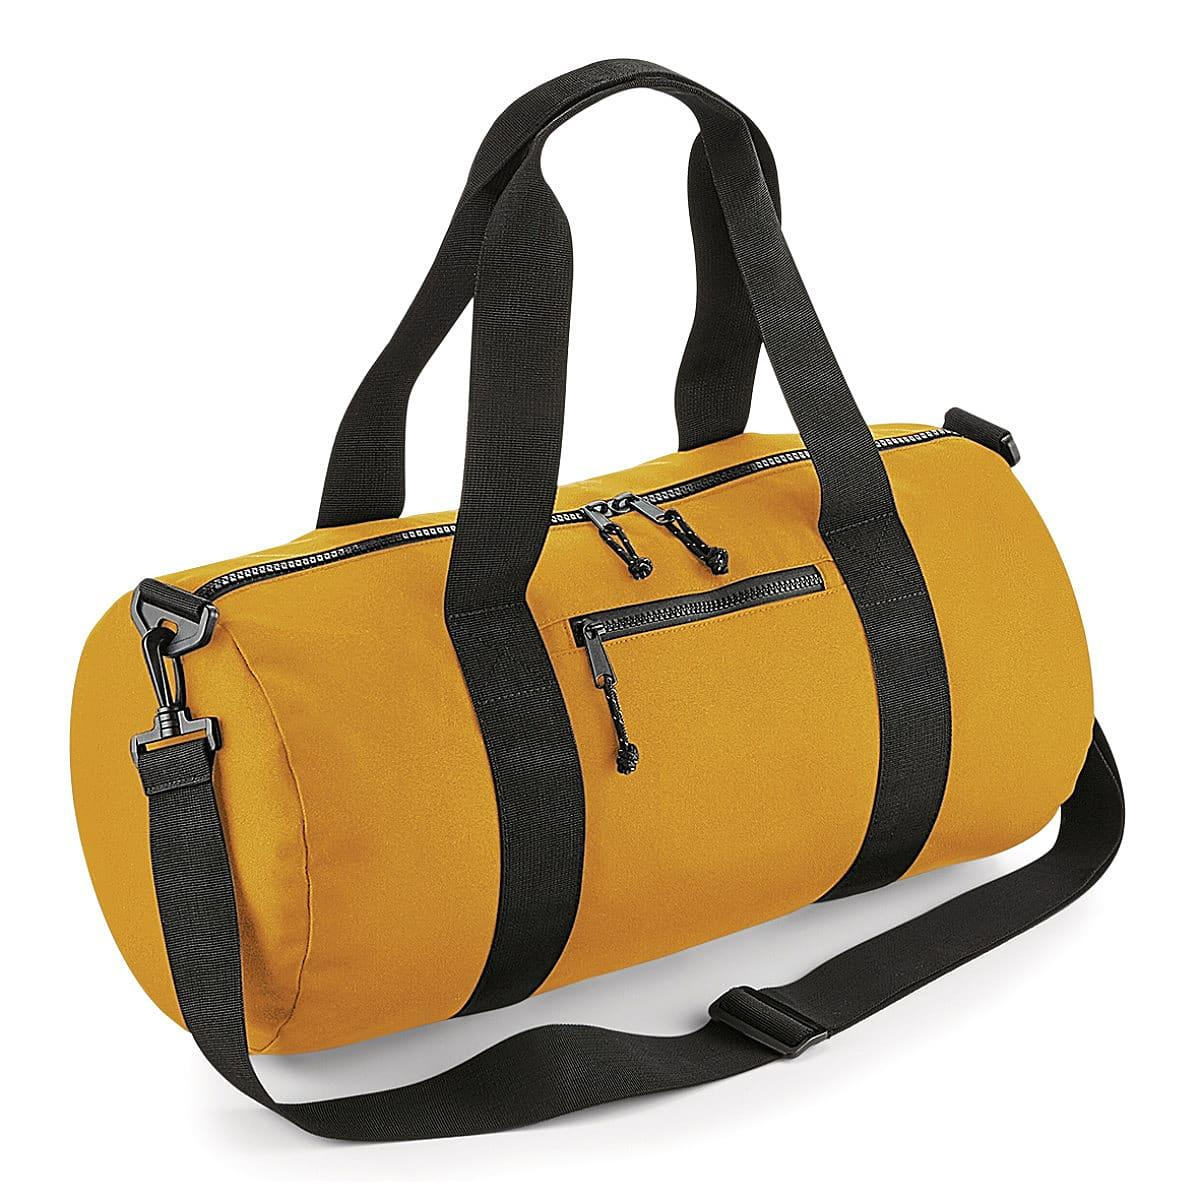 Bagbase Recycled Barrel Bag in Mustard (Product Code: BG284)